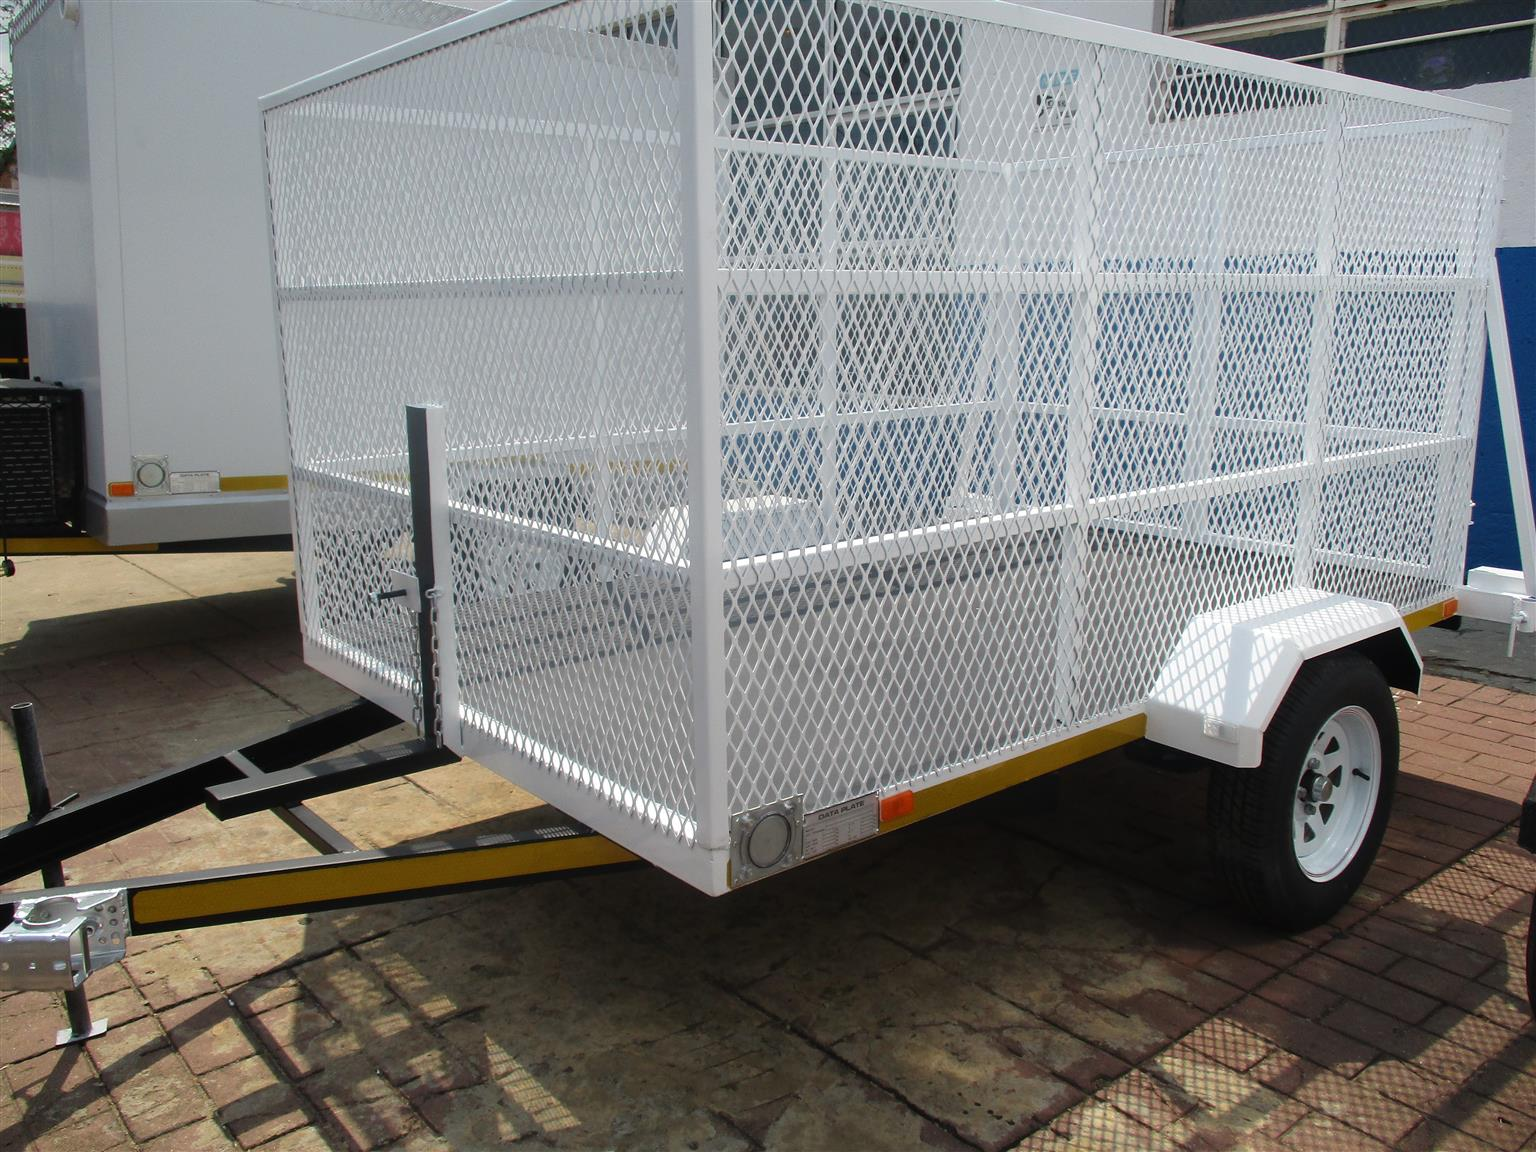 BUY AND COLLECT LUGGAGE TRAILER FOR SALE